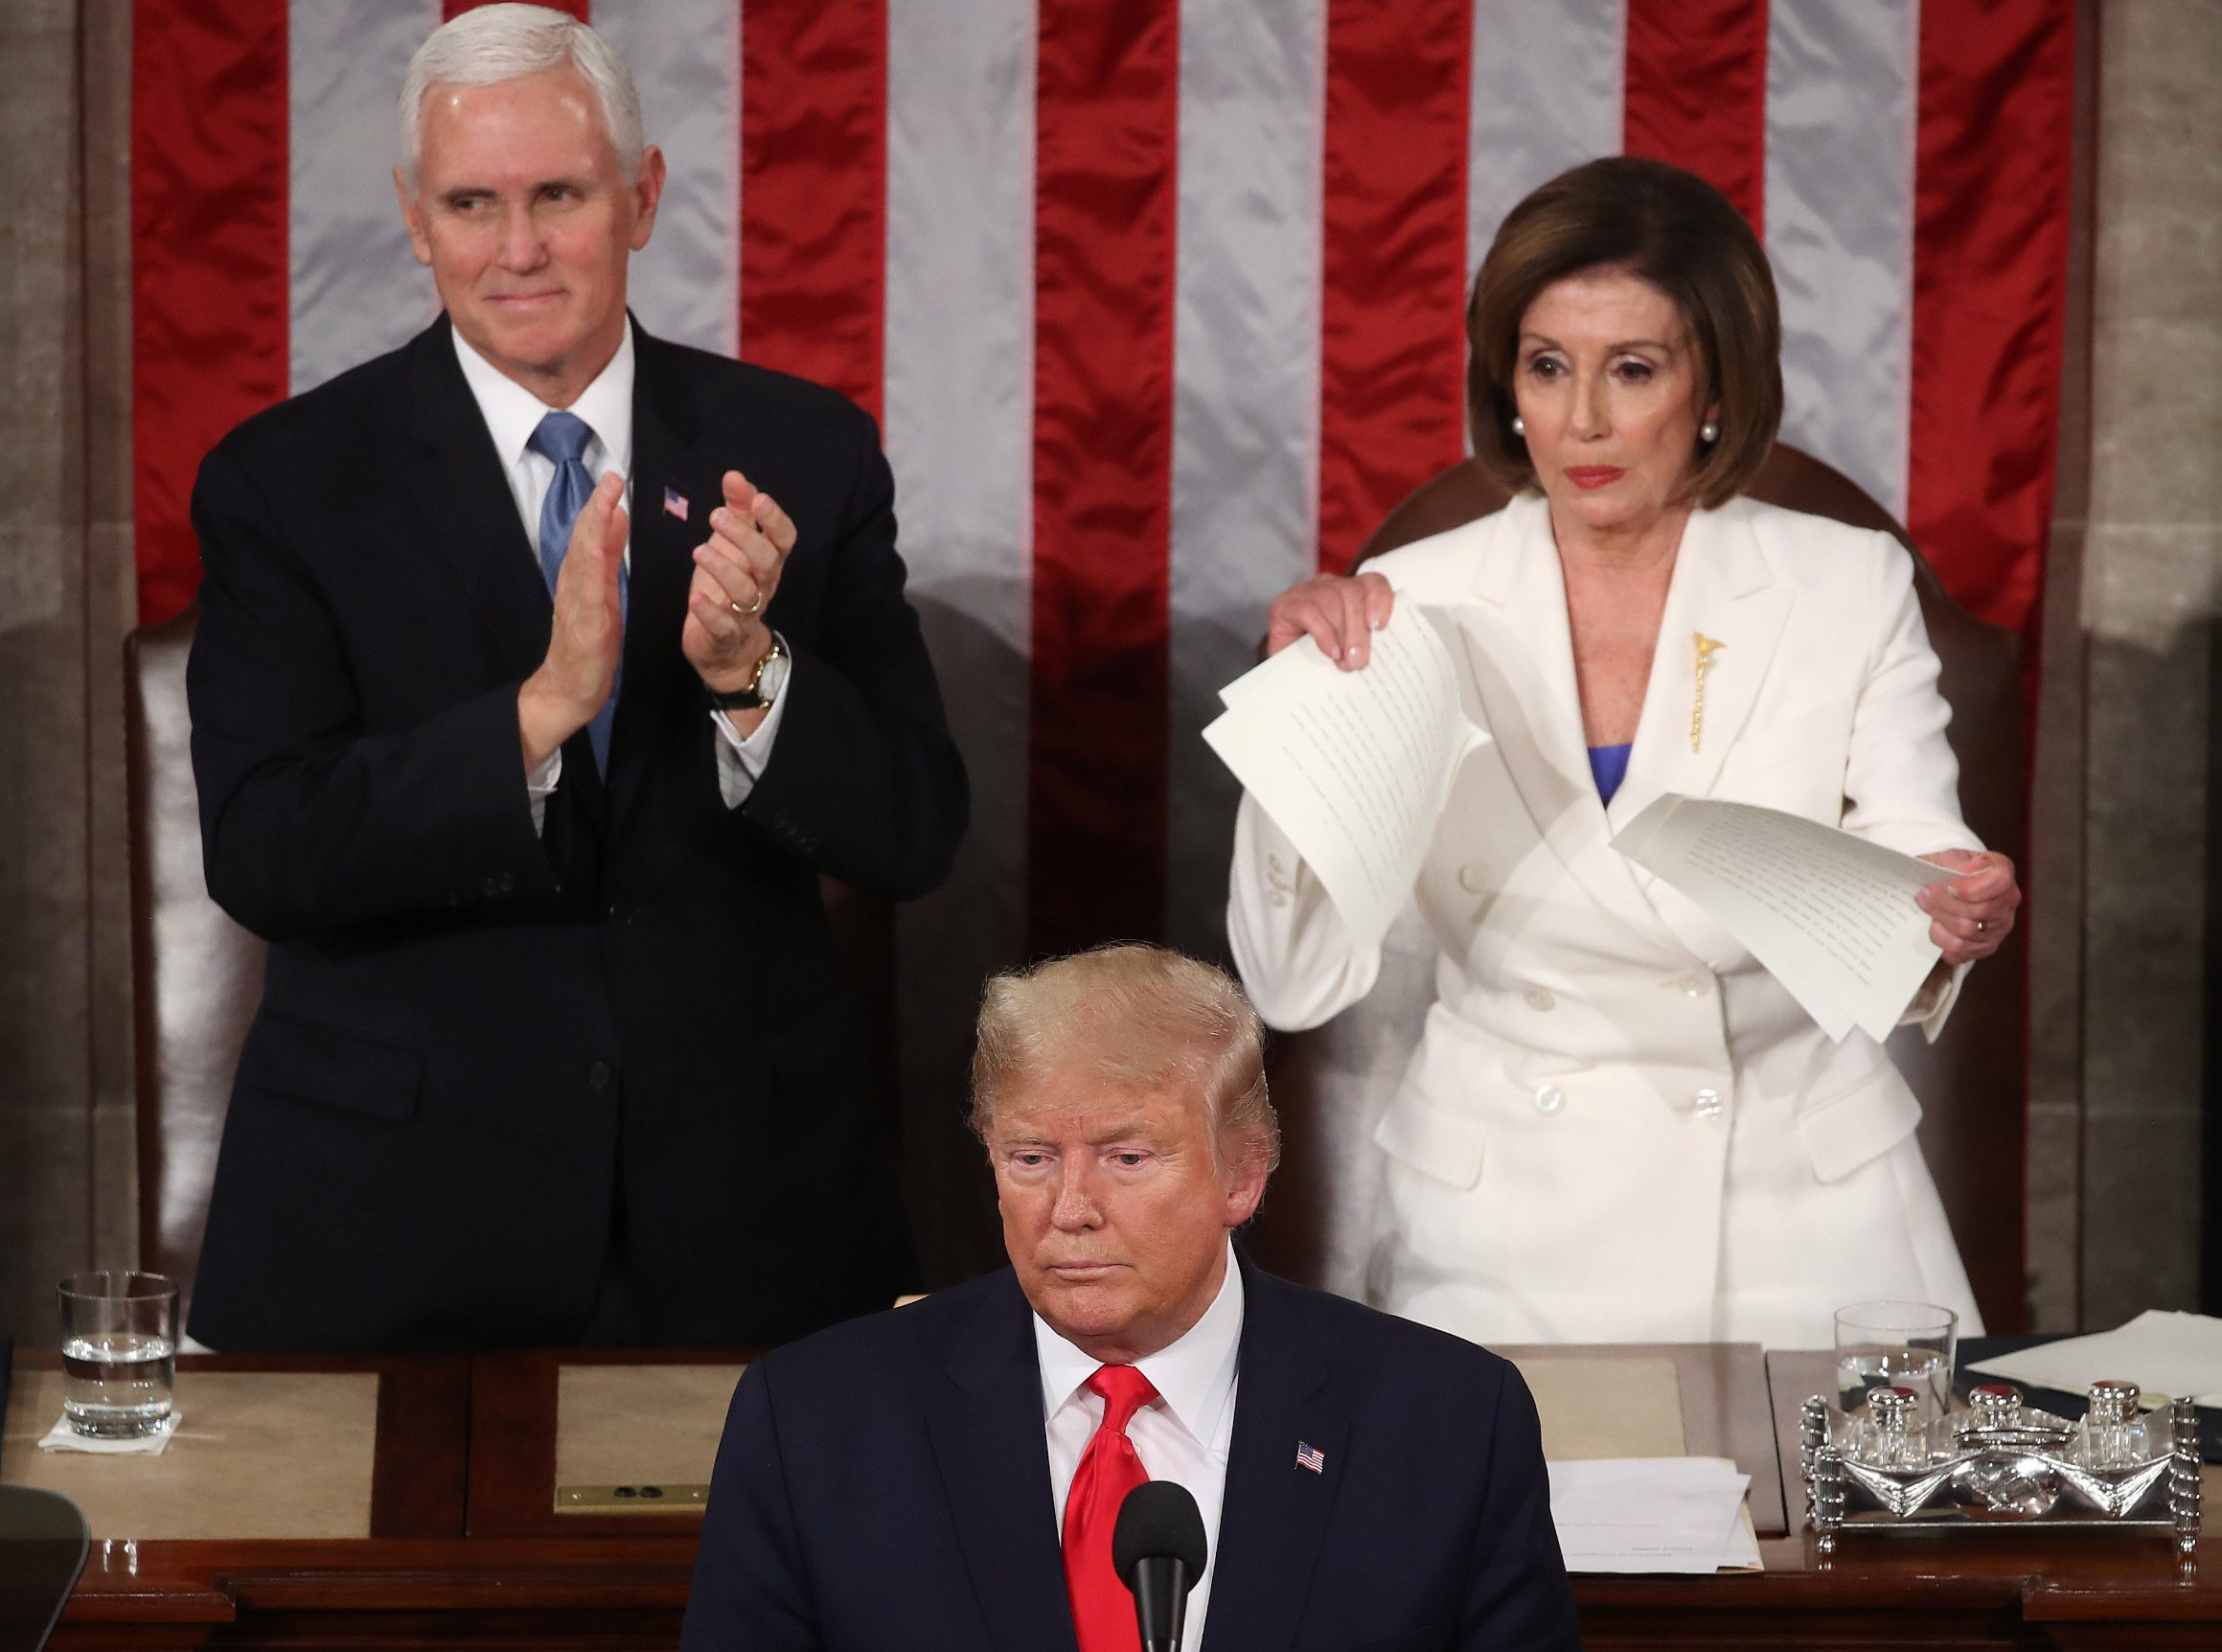 WASHINGTON, DC - FEBRUARY 04: House Speaker Rep. Nancy Pelosi (D-CA) rips up pages of the State of the Union speech after U.S. President Donald Trump finishes his State of the Union speech in the chamber of the U.S. House of Representatives on February 04, 2020 in Washington, DC. President Trump delivers his third State of the Union to the nation the night before the U.S. Senate is set to vote in his impeachment trial.   Mark Wilson/Getty Images/AFP == FOR NEWSPAPERS, INTERNET, TELCOS & TELEVISION USE ONLY ==